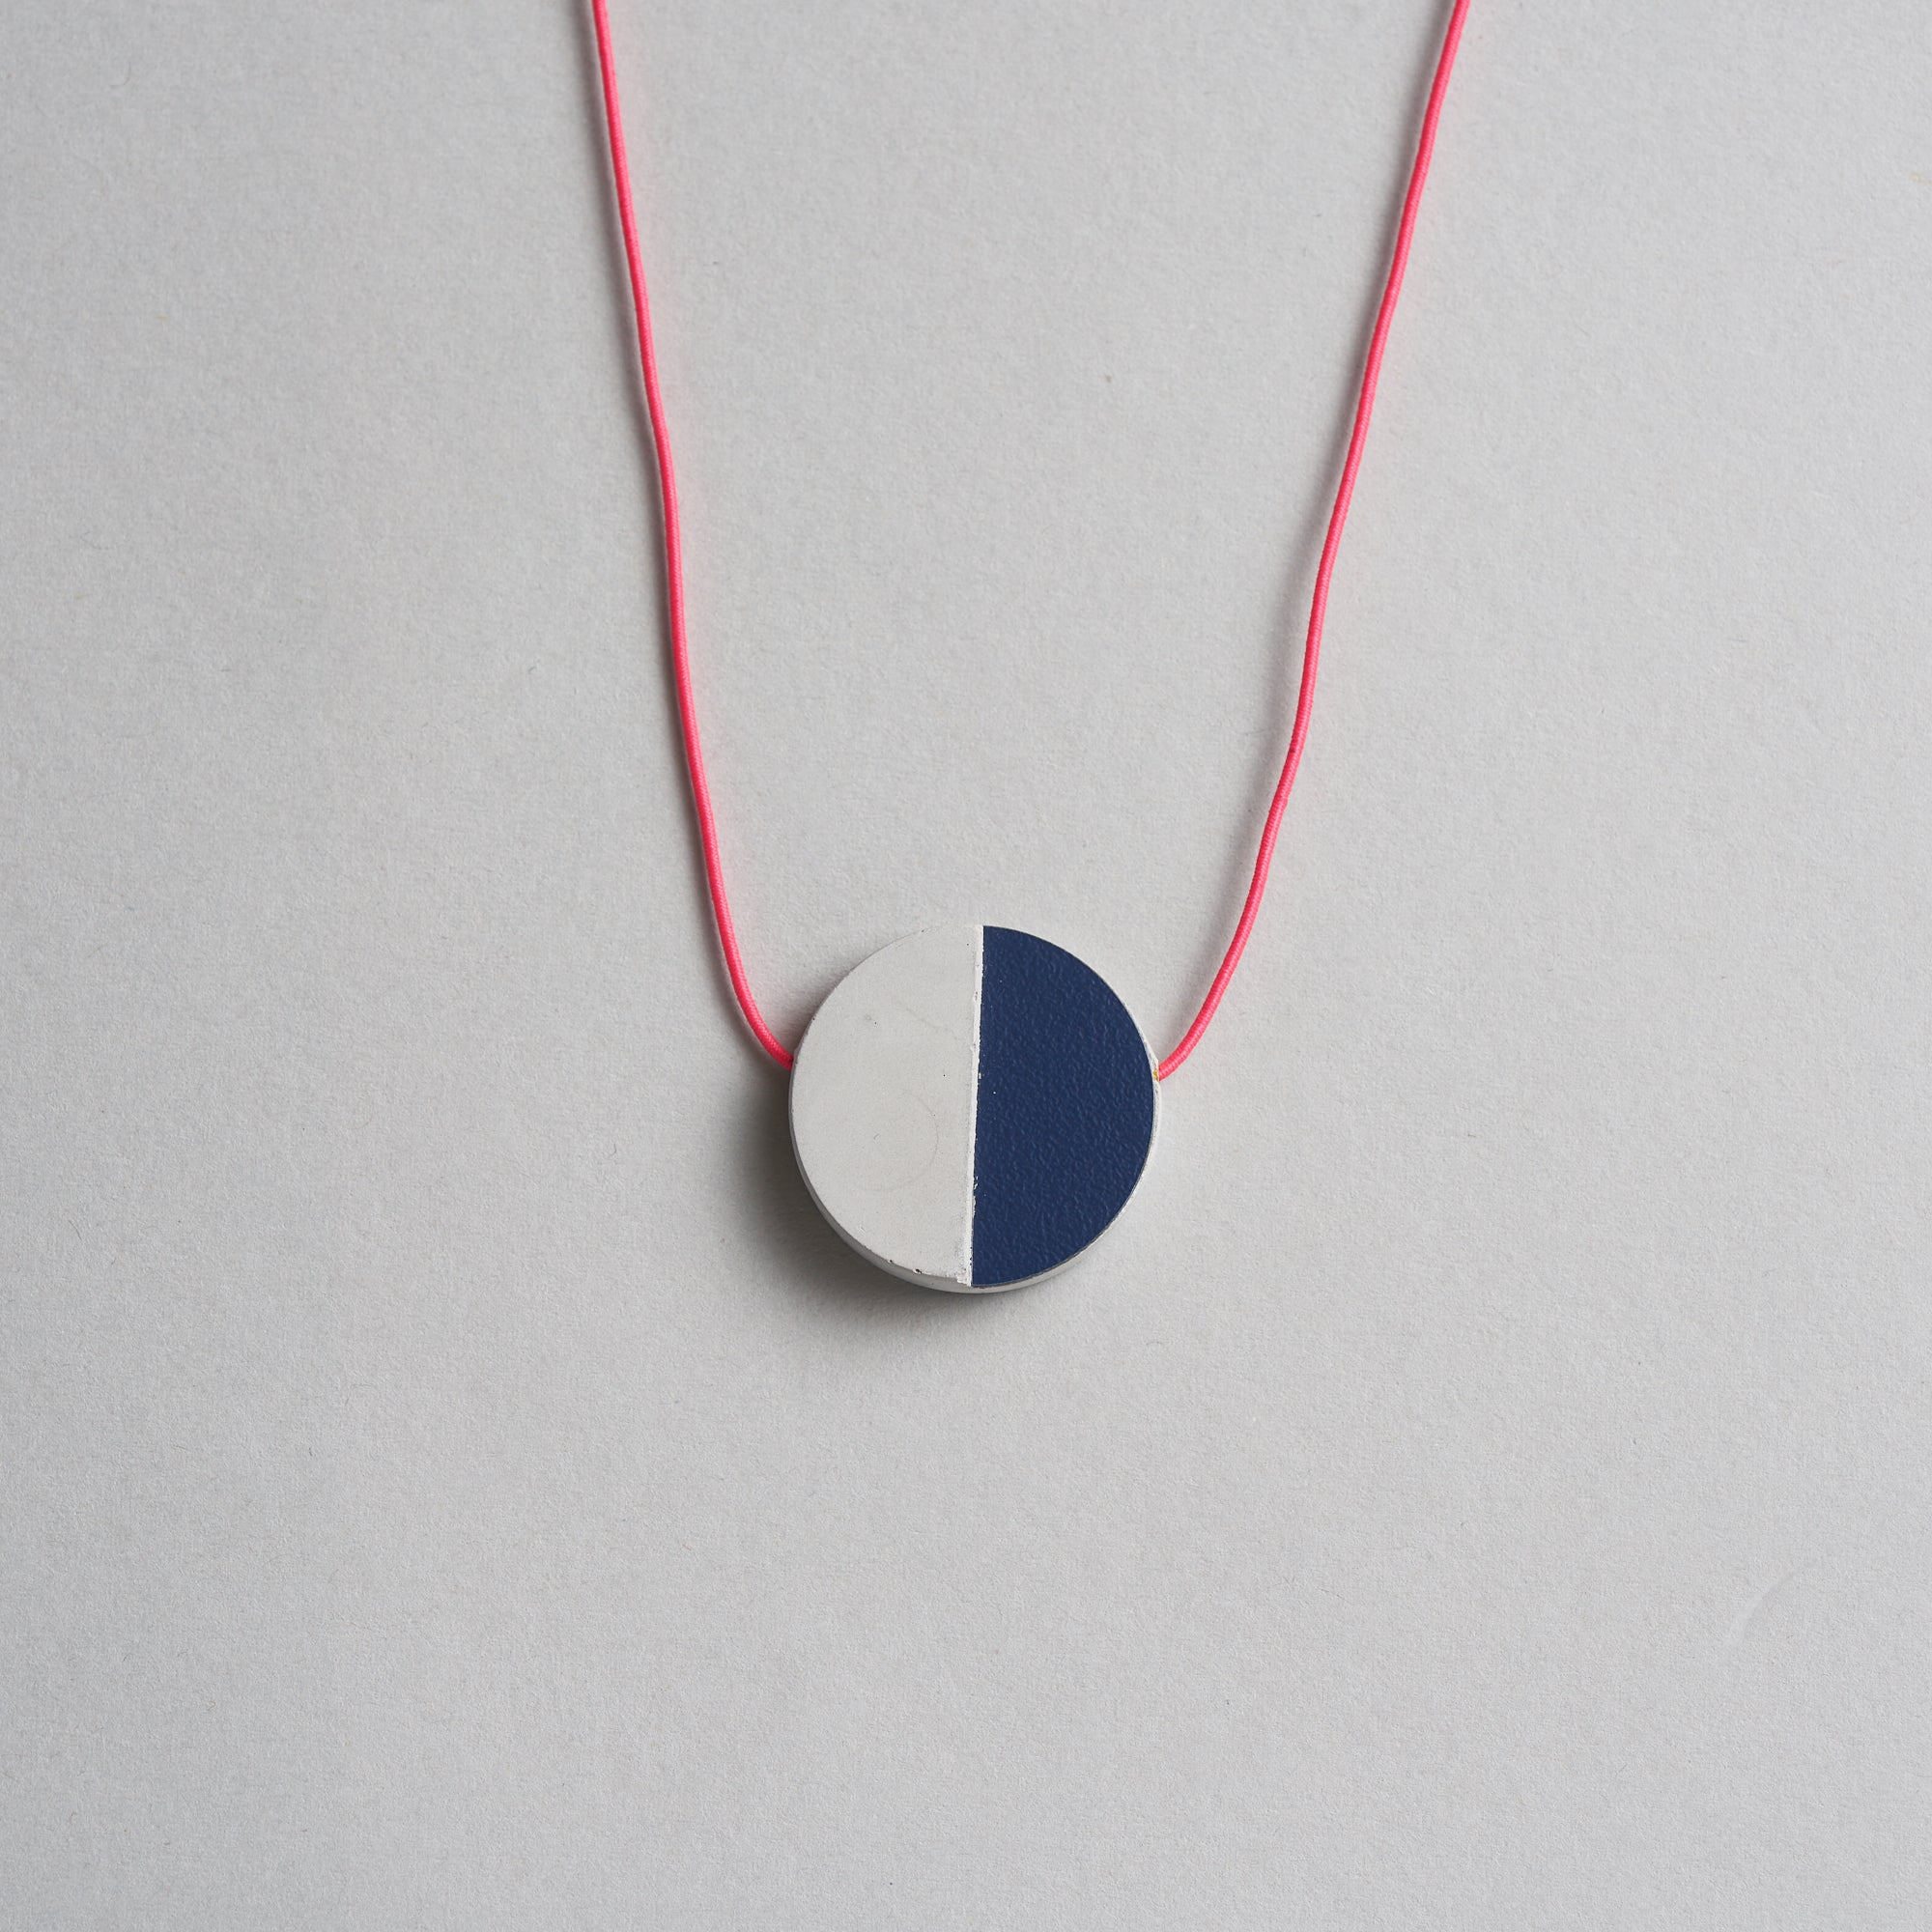 Concrete and Navy Disc Necklace by Block